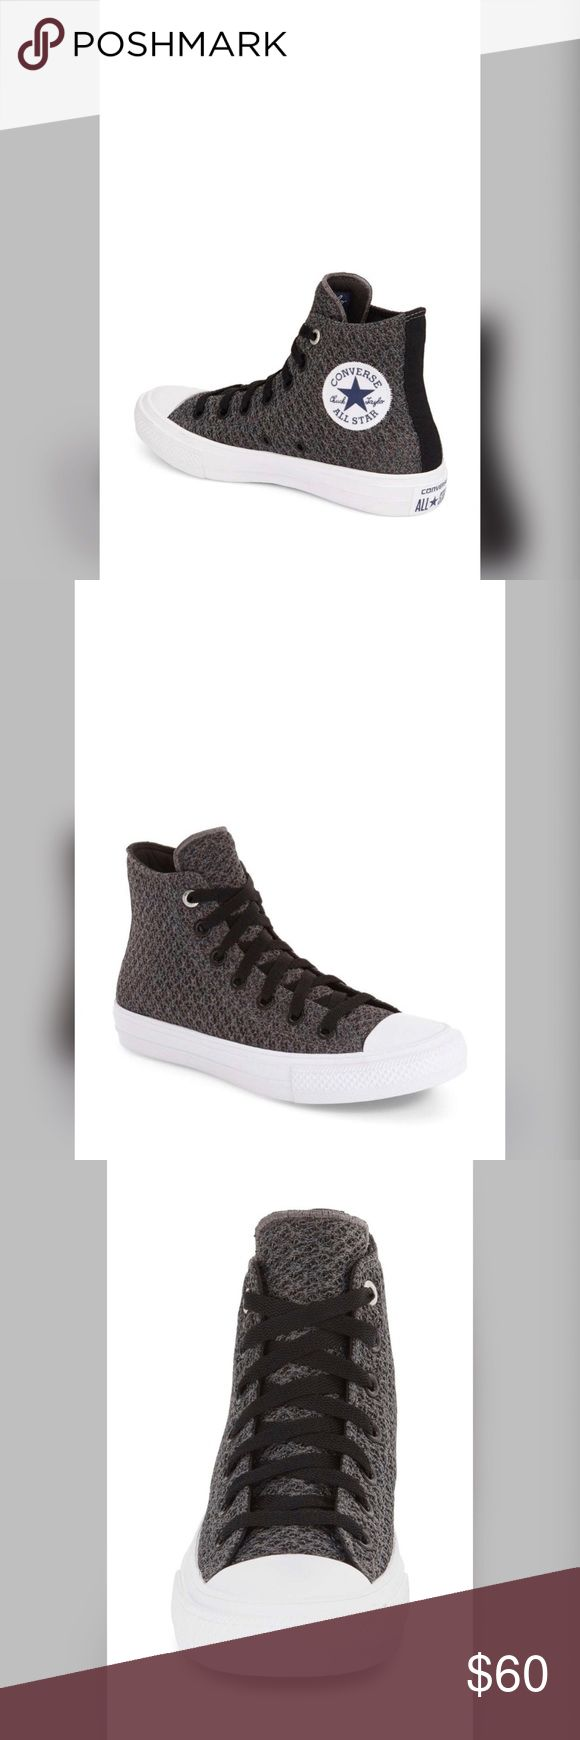 🔥SALE Converse All Star Chuck Taylor New Converse All Star Chuck Taylor Unisex BNIB. Gray and white combination Chuck Taylor Unisex size 5 (Men) or size 7 (women) $90 Retail. Make me a reasonable offer. Has 2 laces black and white Converse Shoes Sneakers